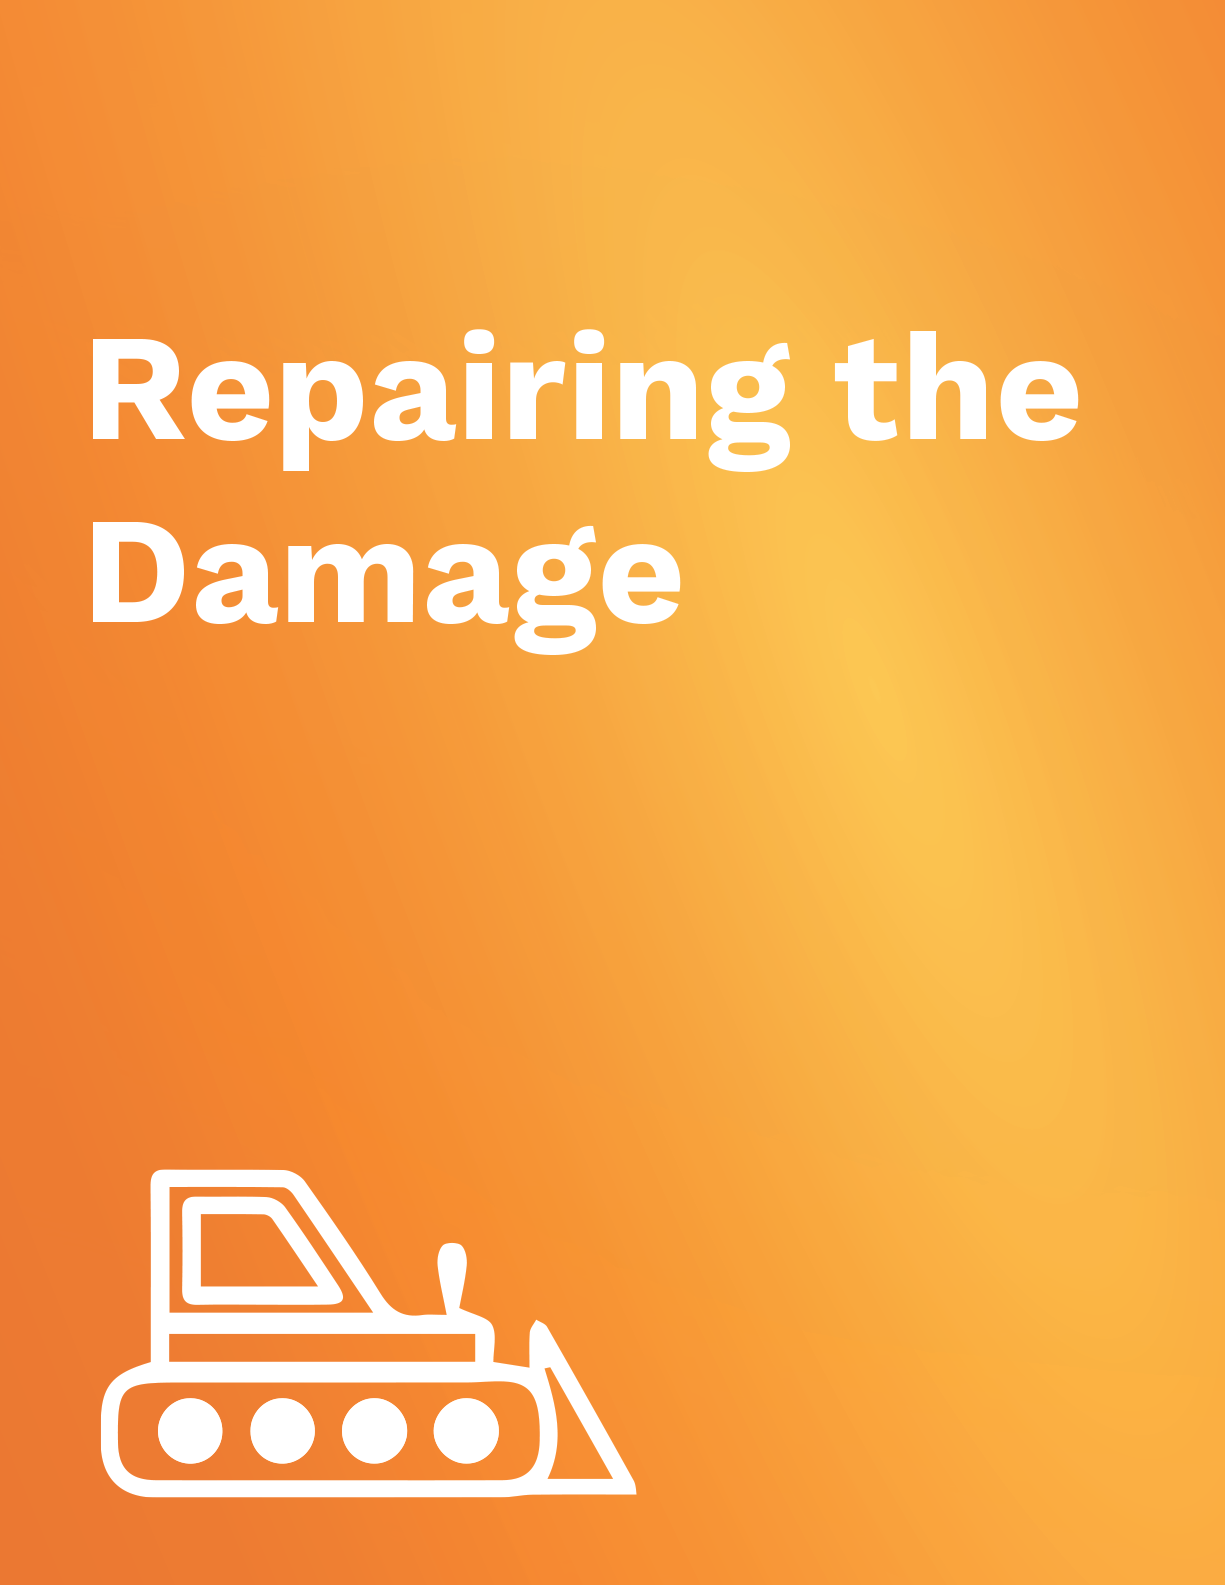 Repairing the Damage